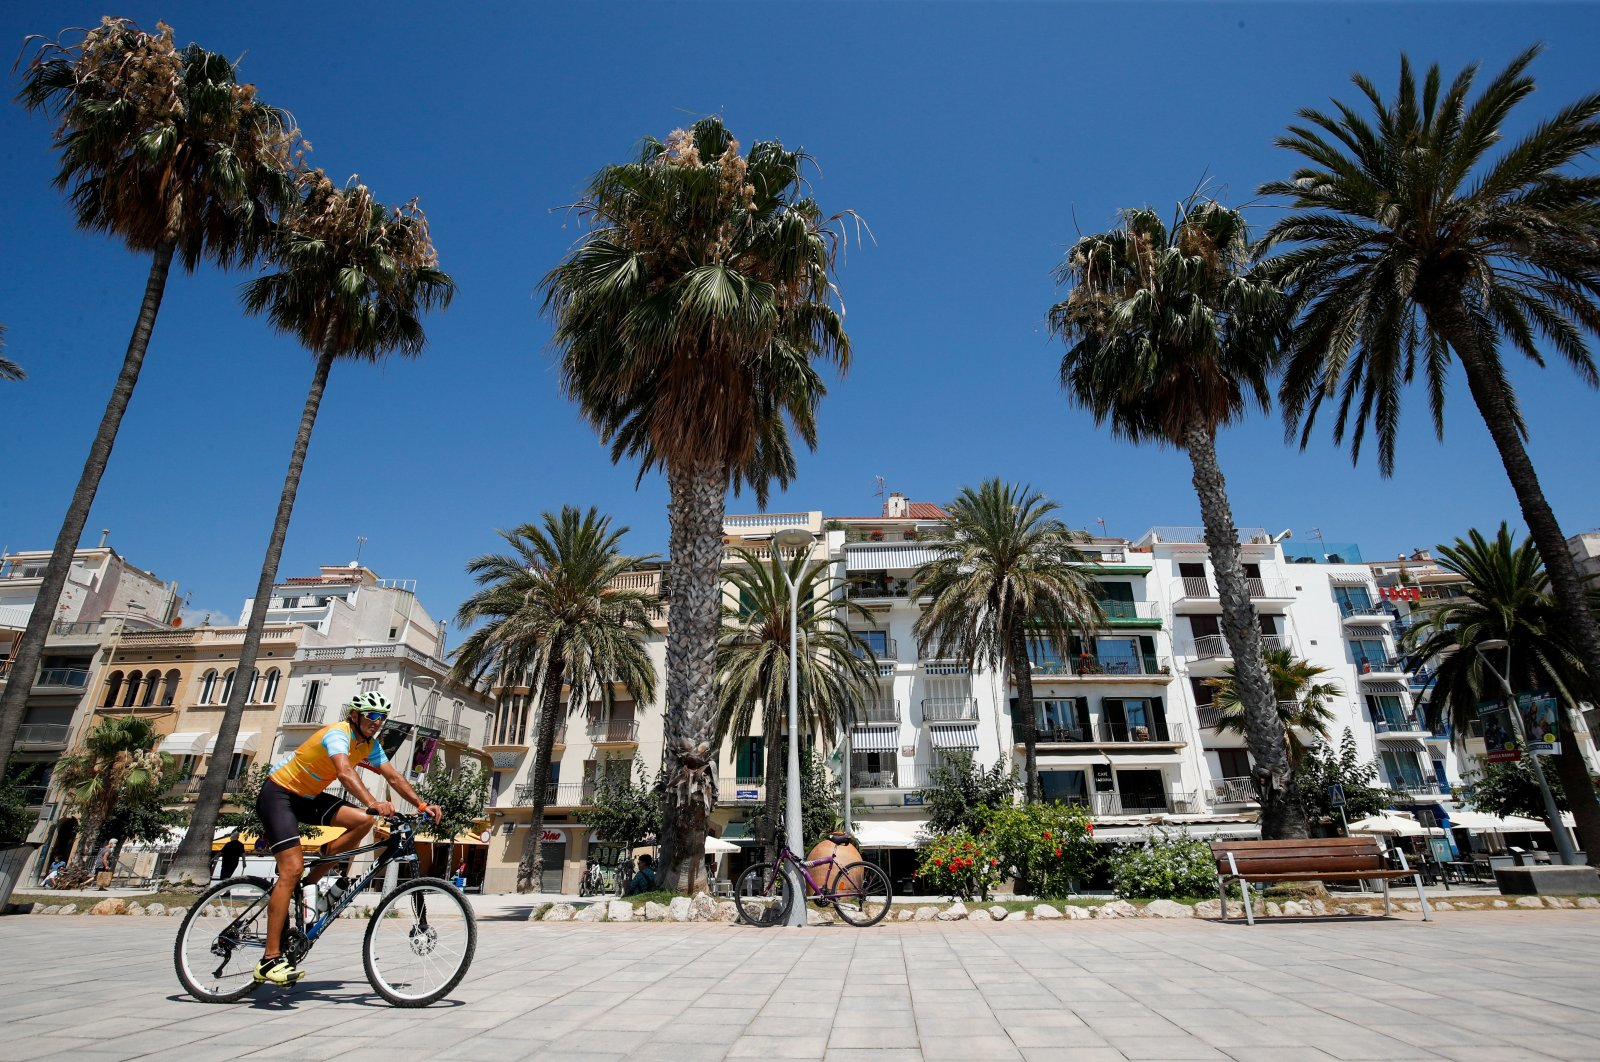 A man rides a bike at a pedestrian area in Sitges town, south of Barcelona, Spain, July 15, 2021. (Reuters Photo)